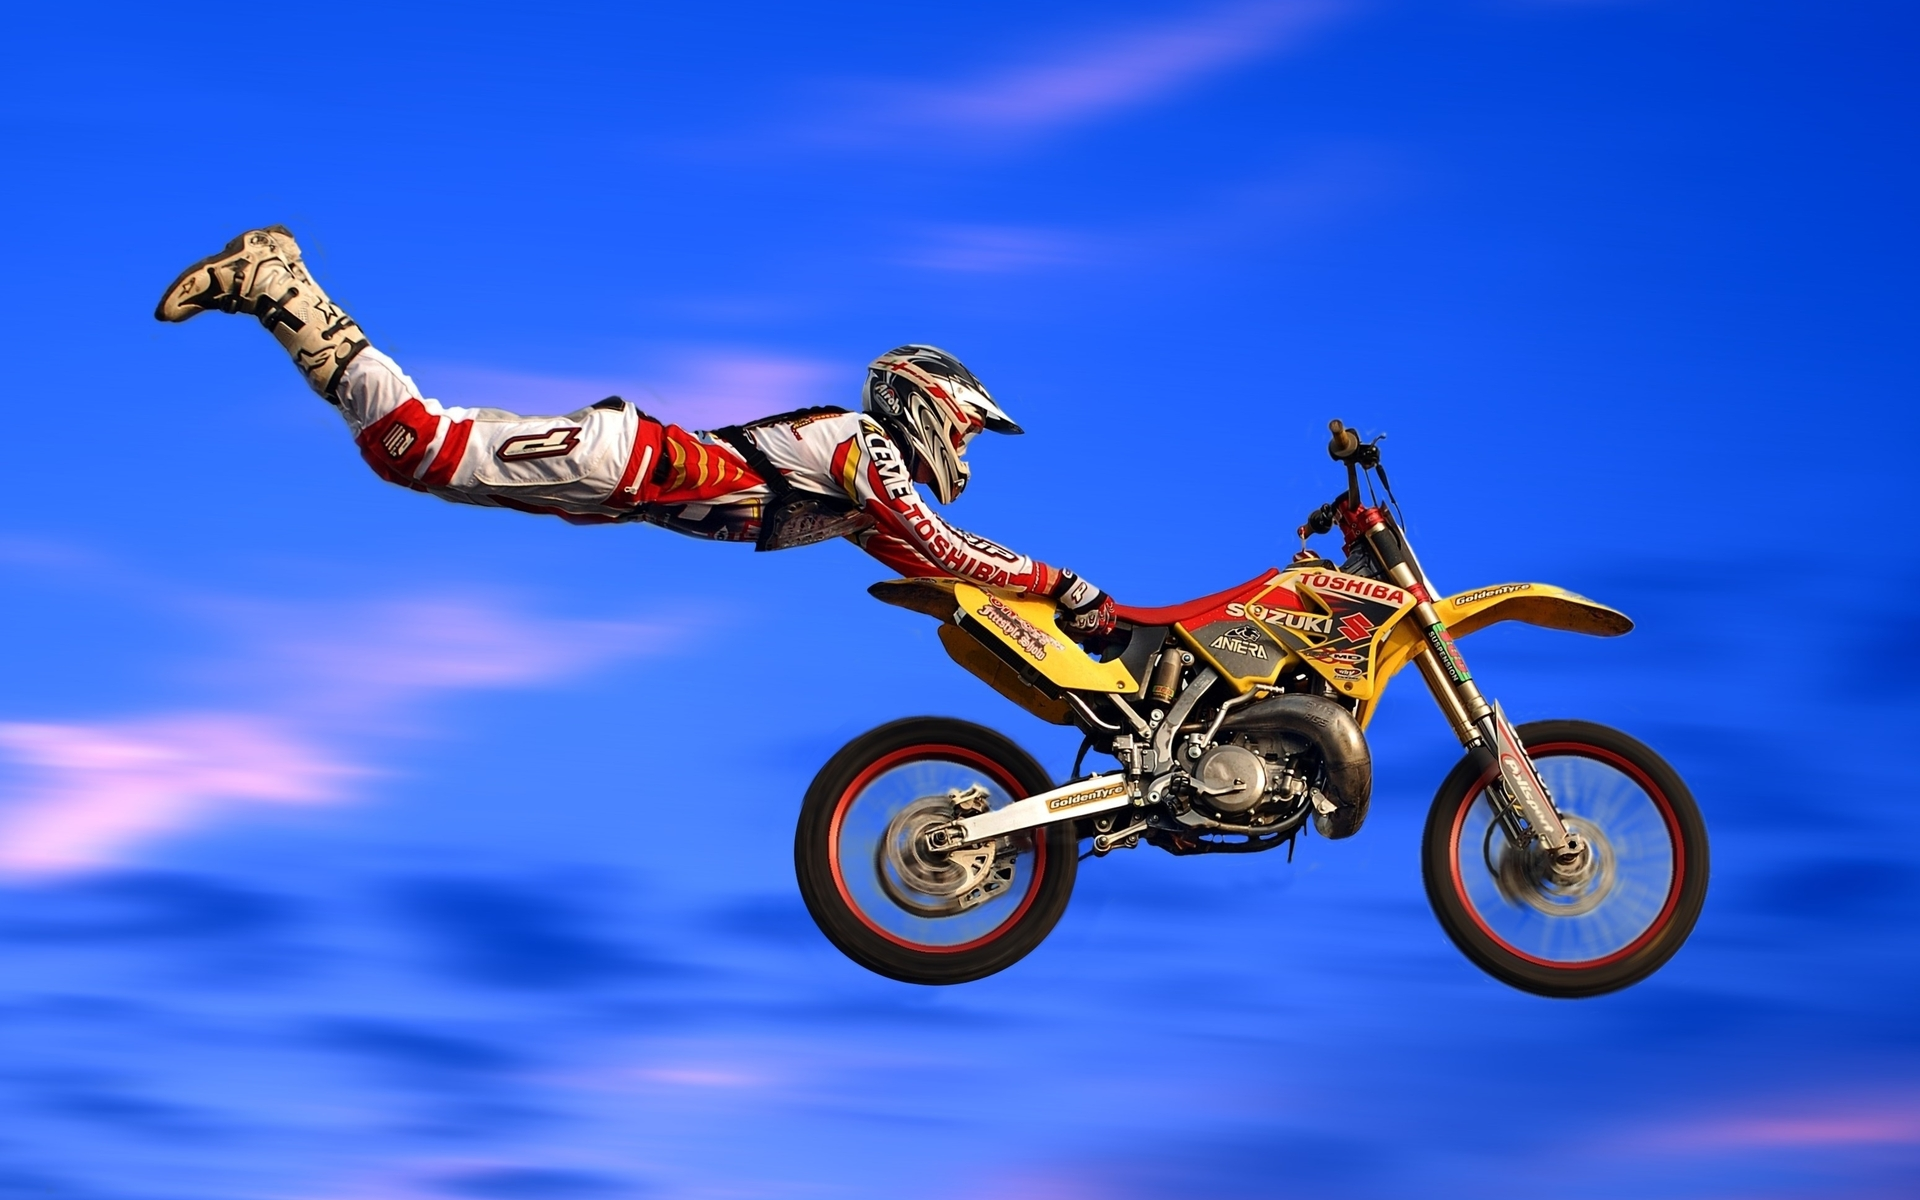 Motocross Jumping Wallpapers Backgrounds Photos HD Wallpapers 1920x1200